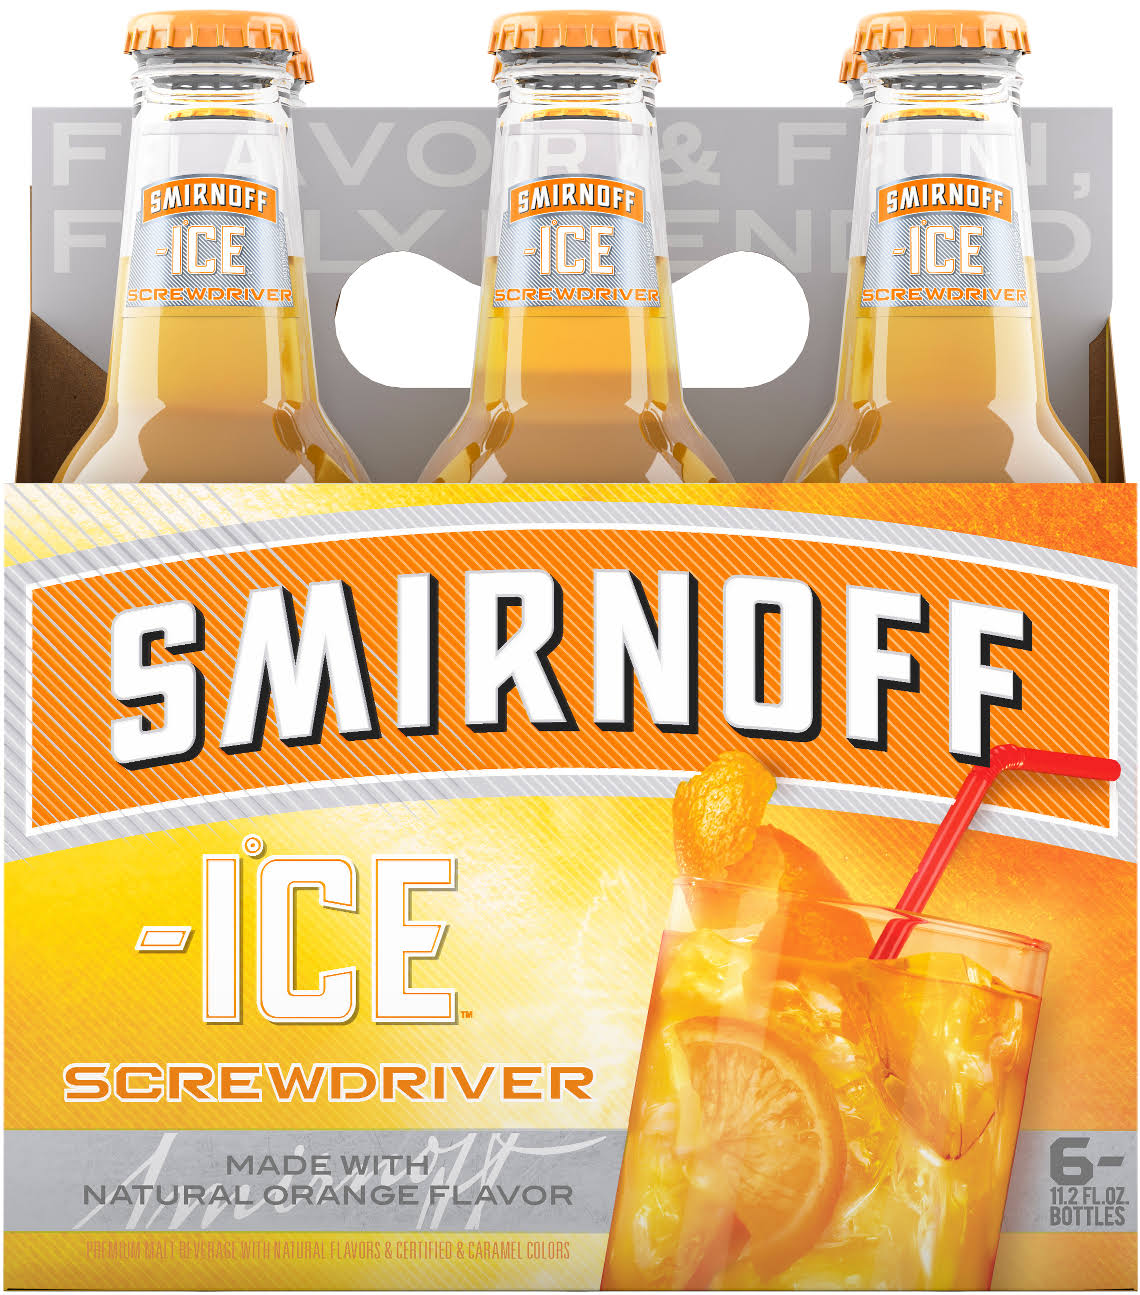 Smirnoff Ice Malt Beverage, Screwdriver - 6 pack, 11.2 fl oz bottles